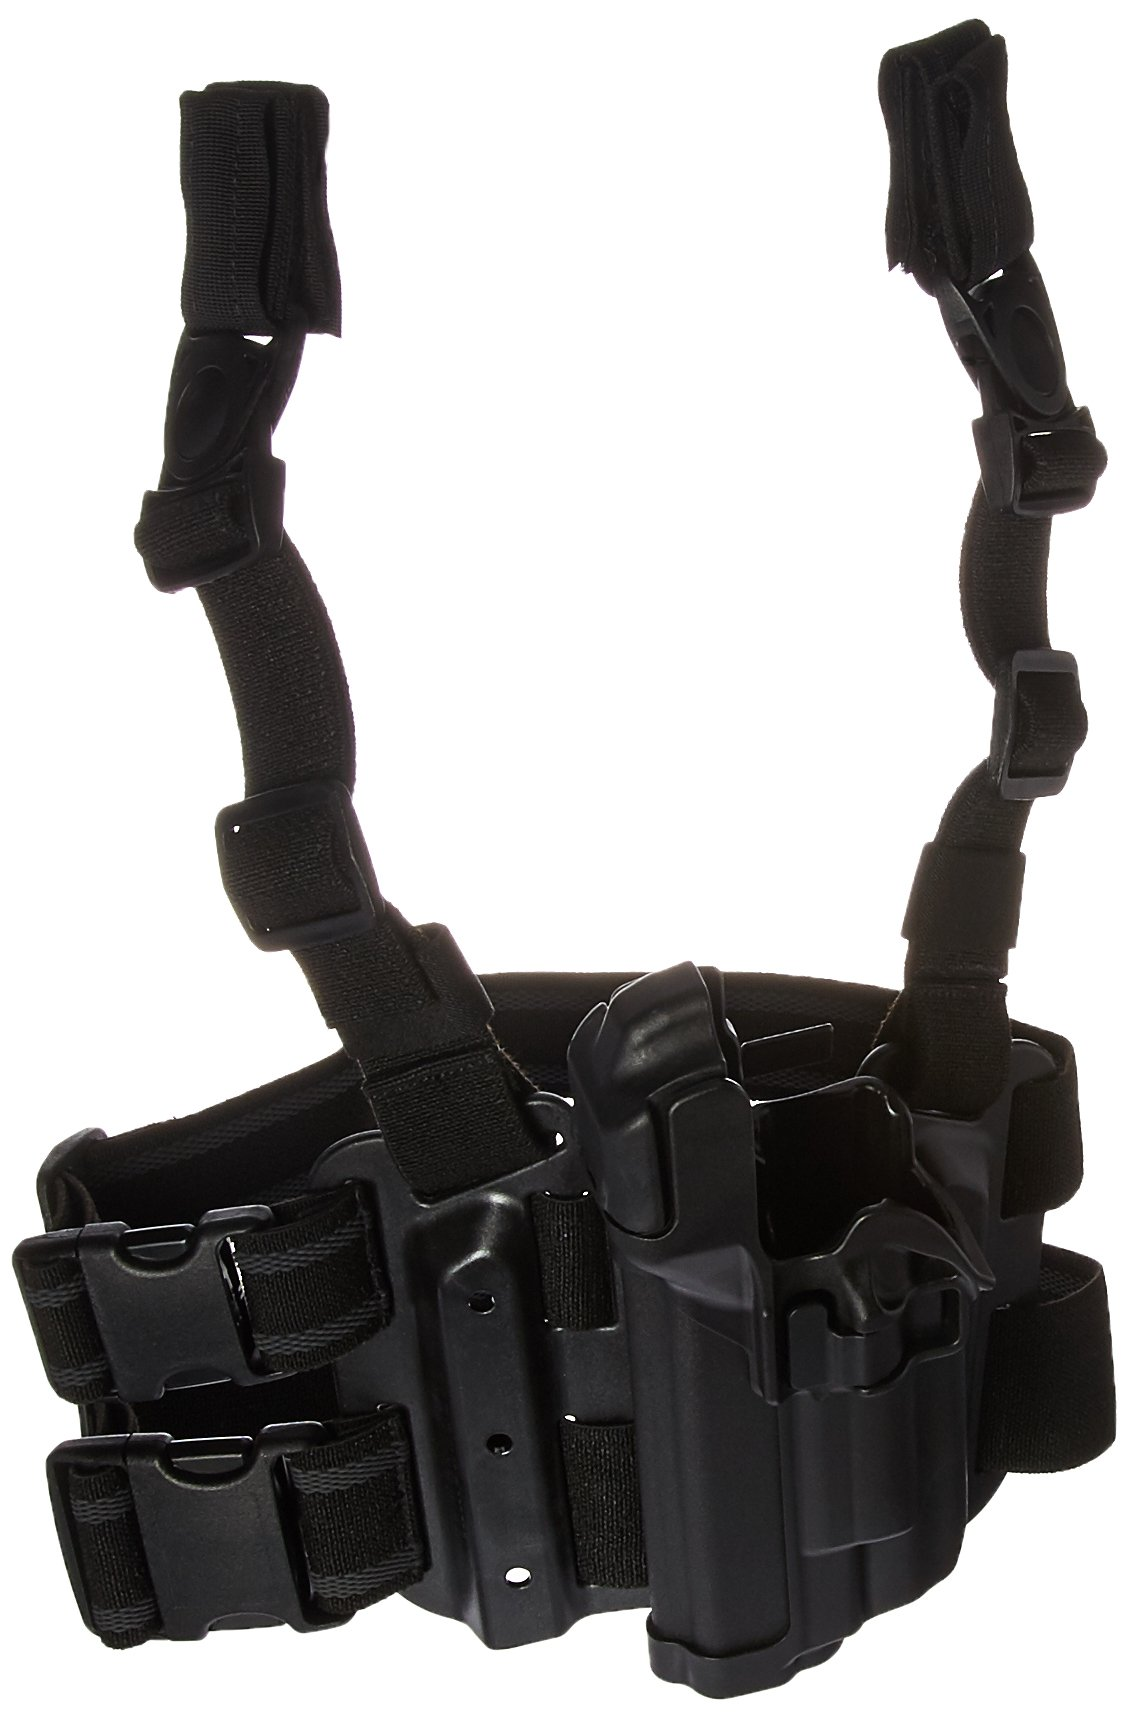 BLACKHAWK SERPA Level 3 Light Bearing Tactical Holster - Matte Finish